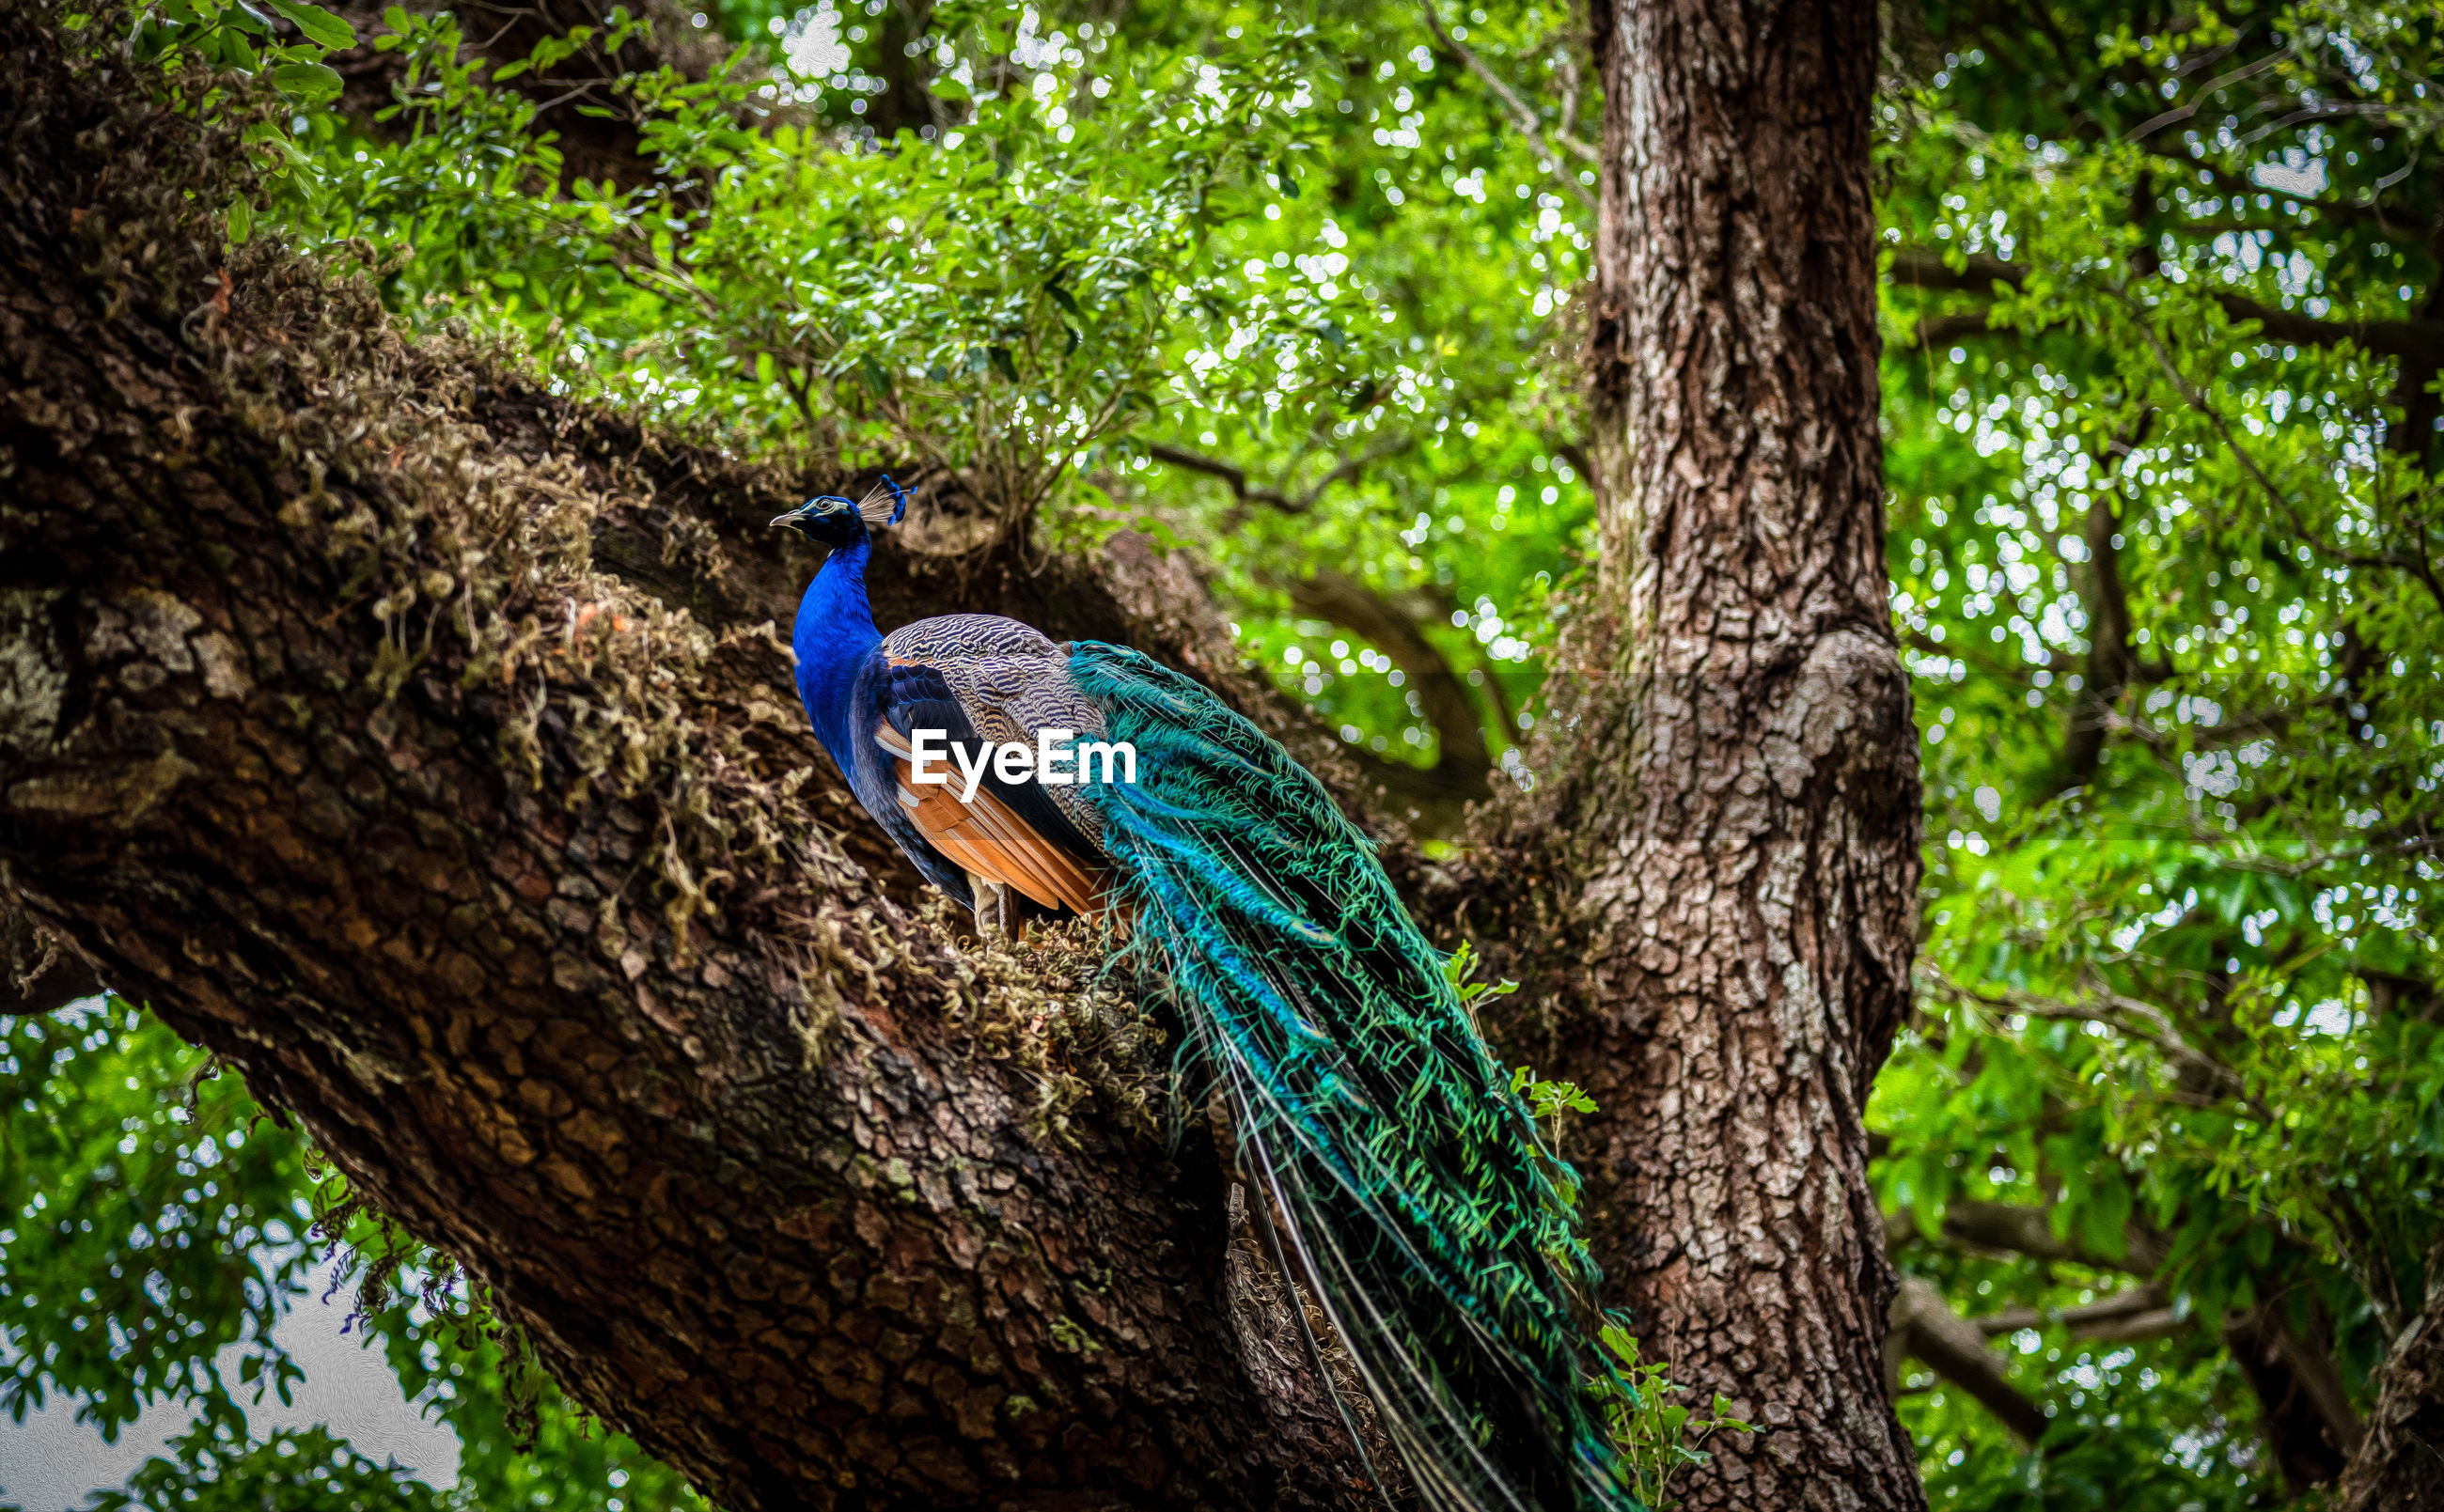 VIEW OF PEACOCK PERCHING ON TREE TRUNK